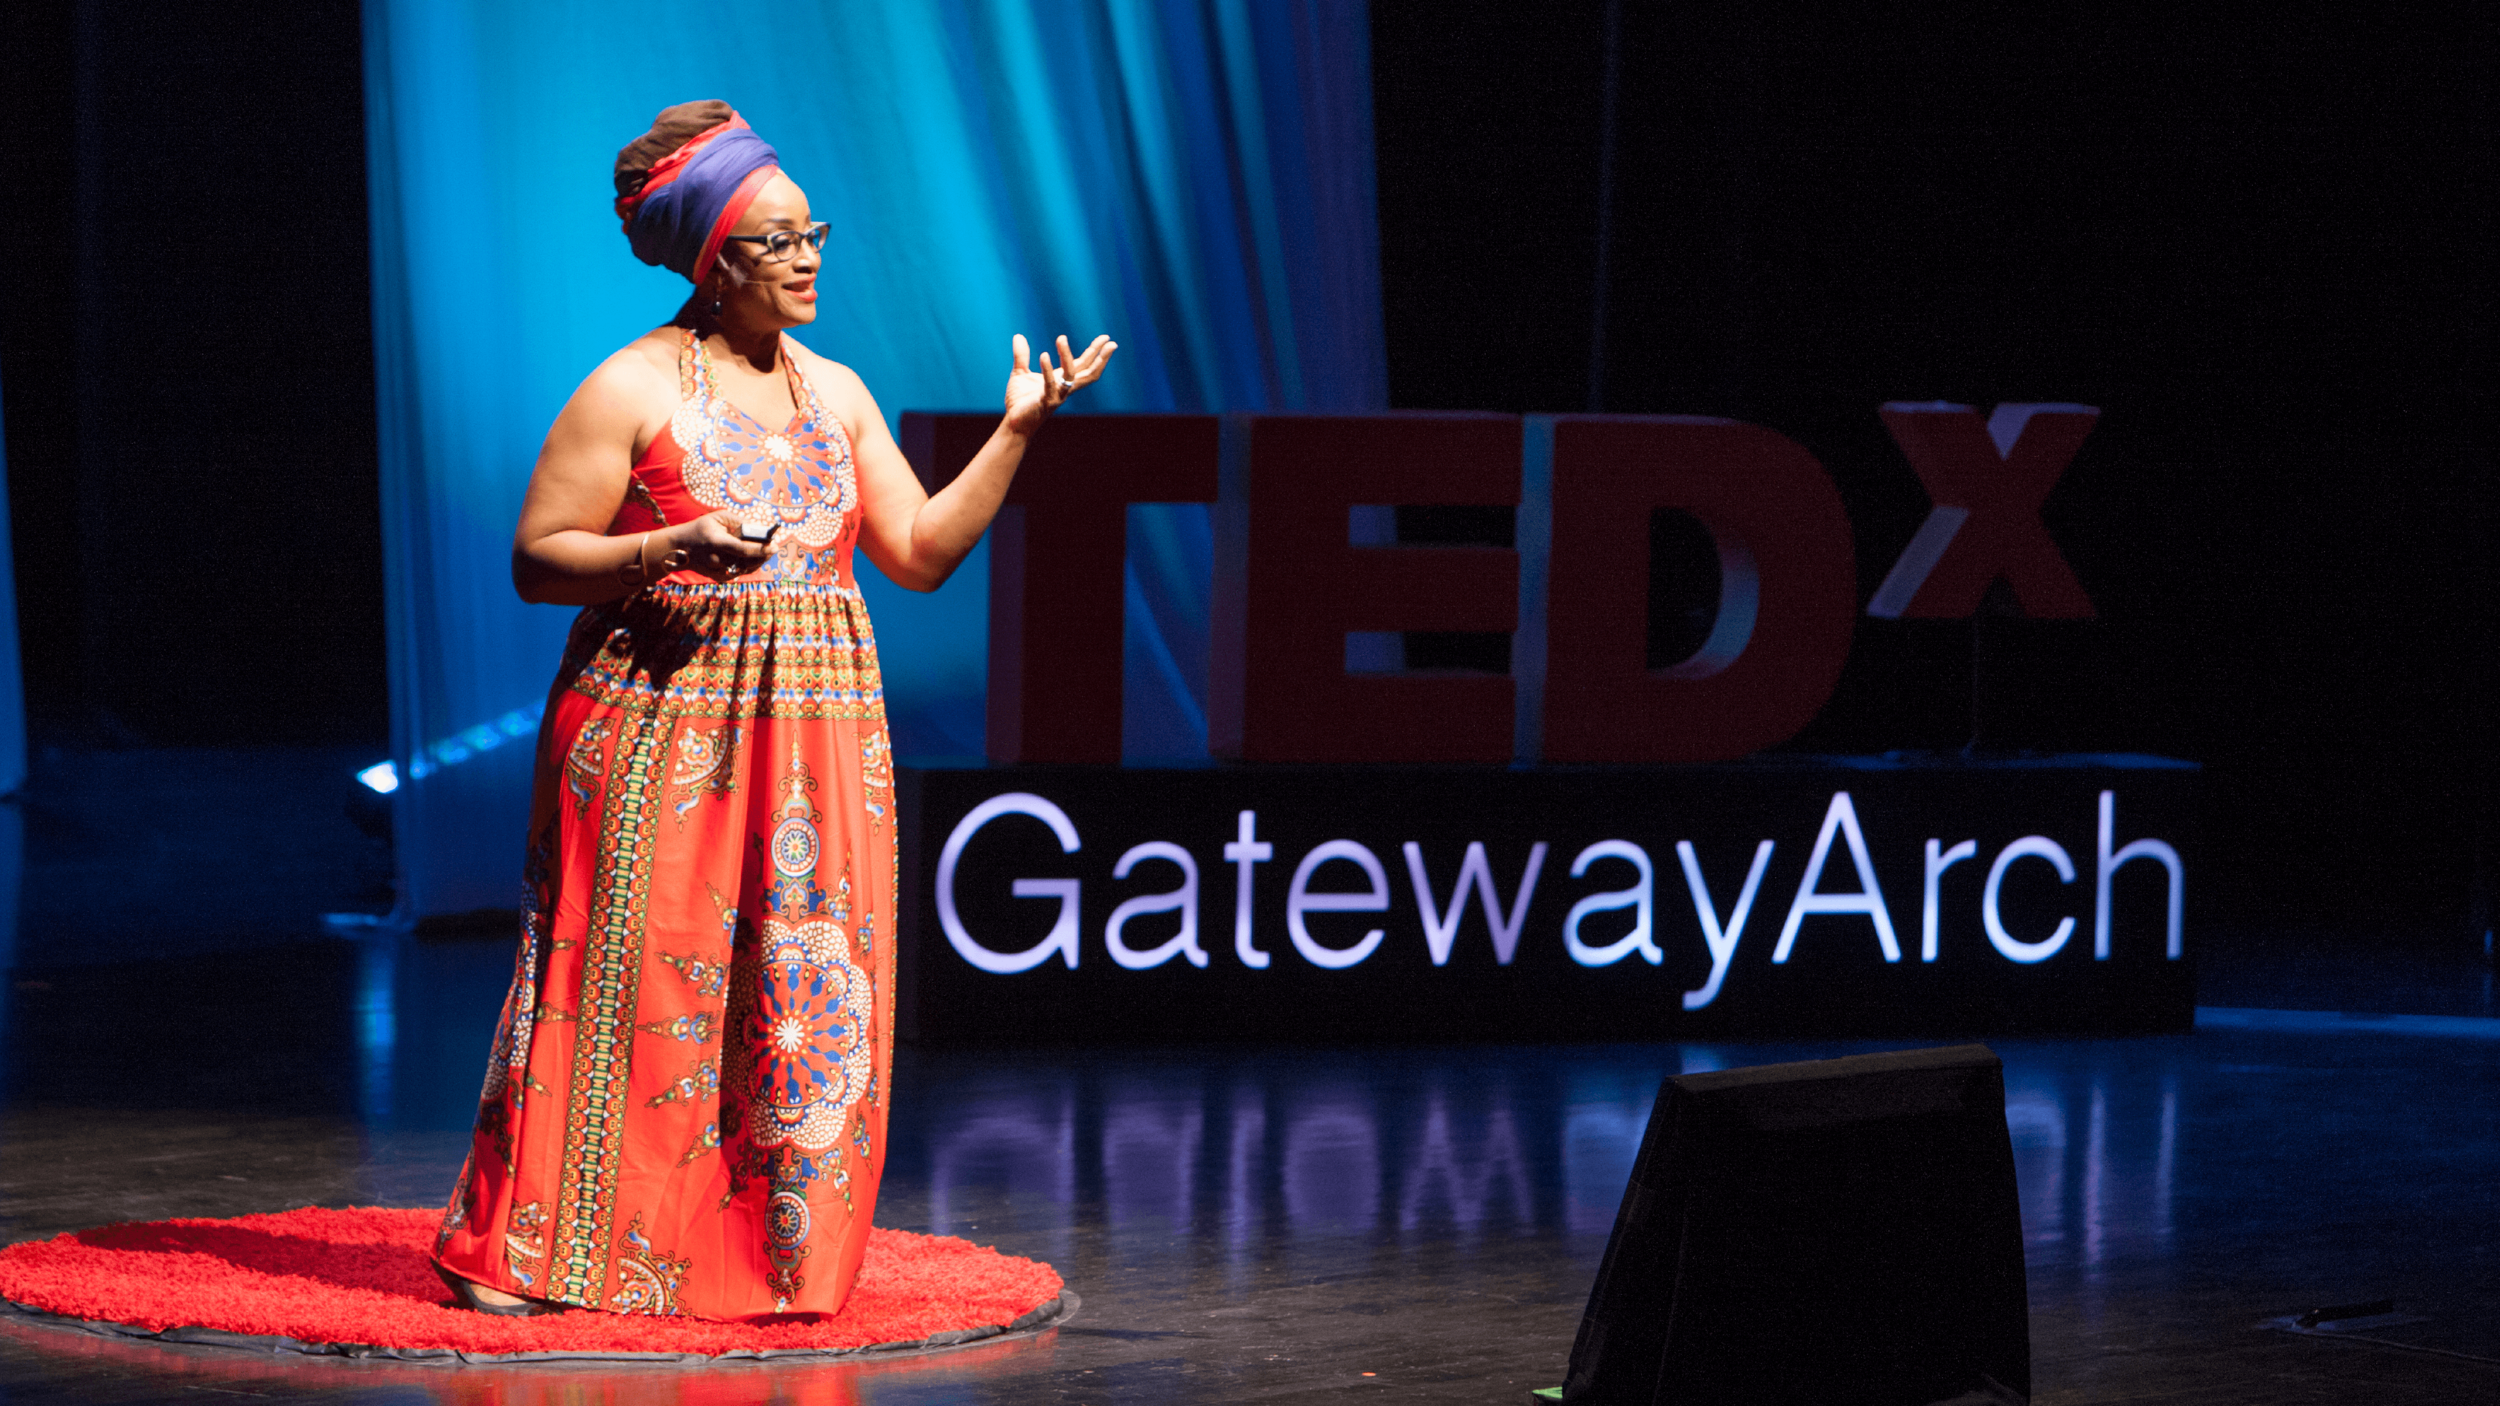 TEDx Ticketmaster Image_3840x2160.png